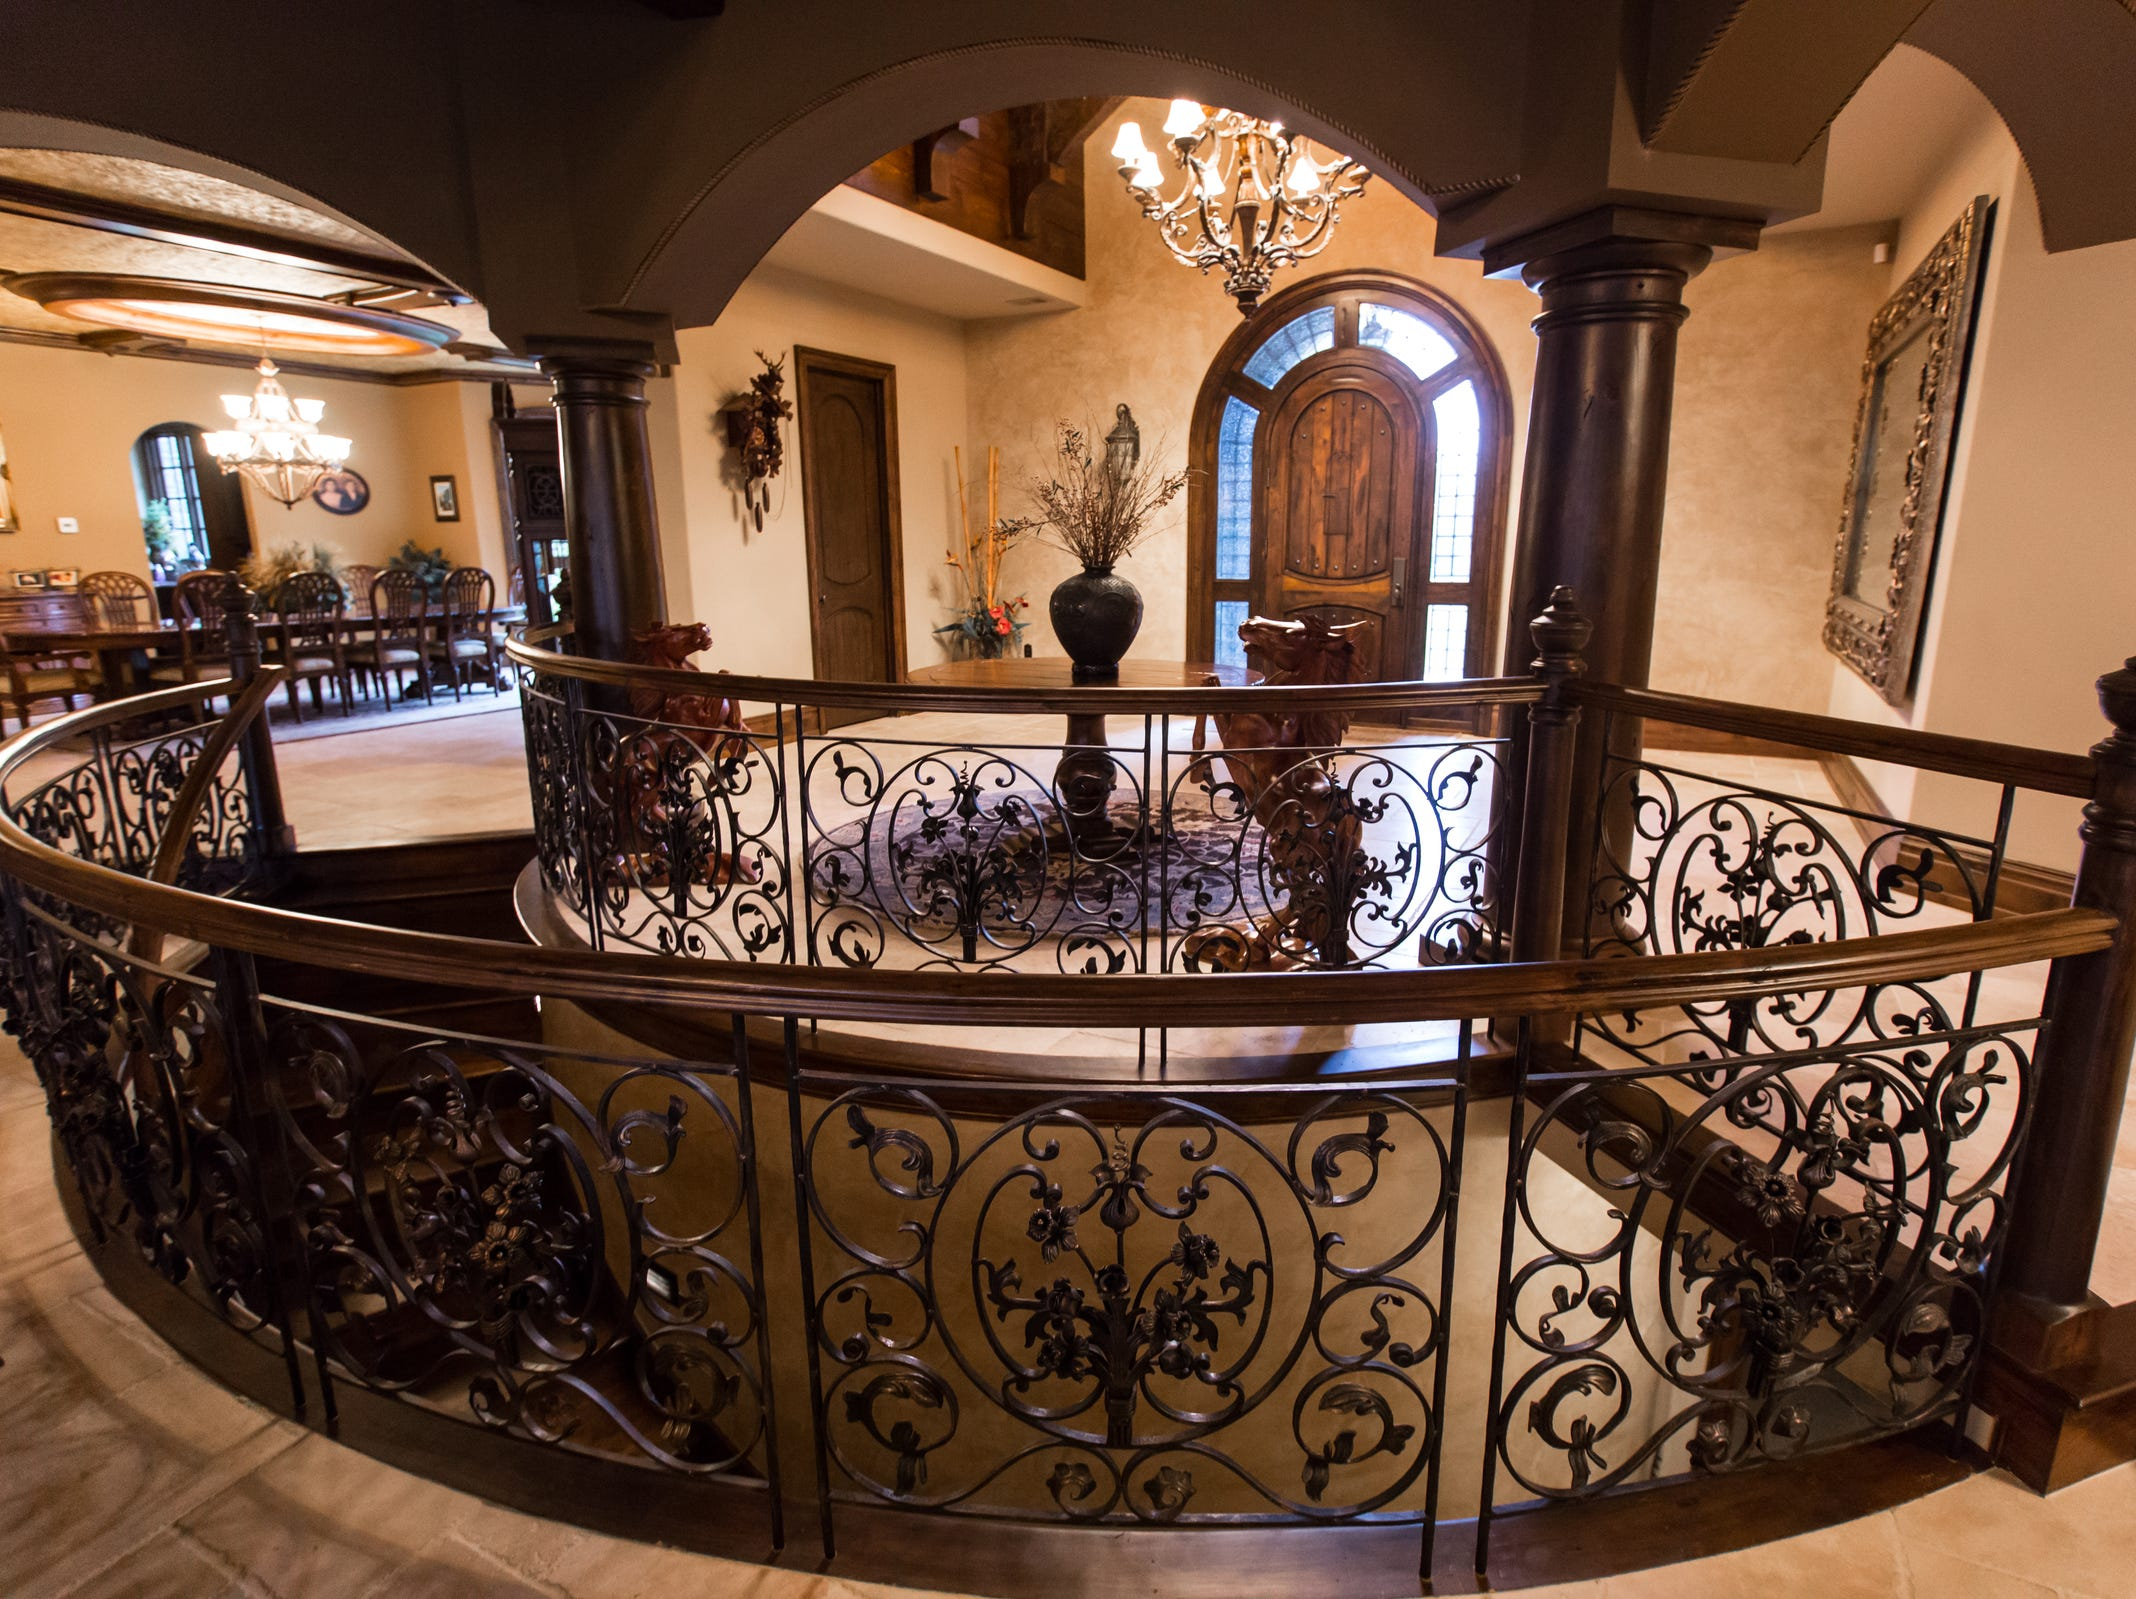 The large foyer includes arches, pillars, seeded glass, intricate wrought iron and Venetian plaster, garnished with two sculpted stallions.